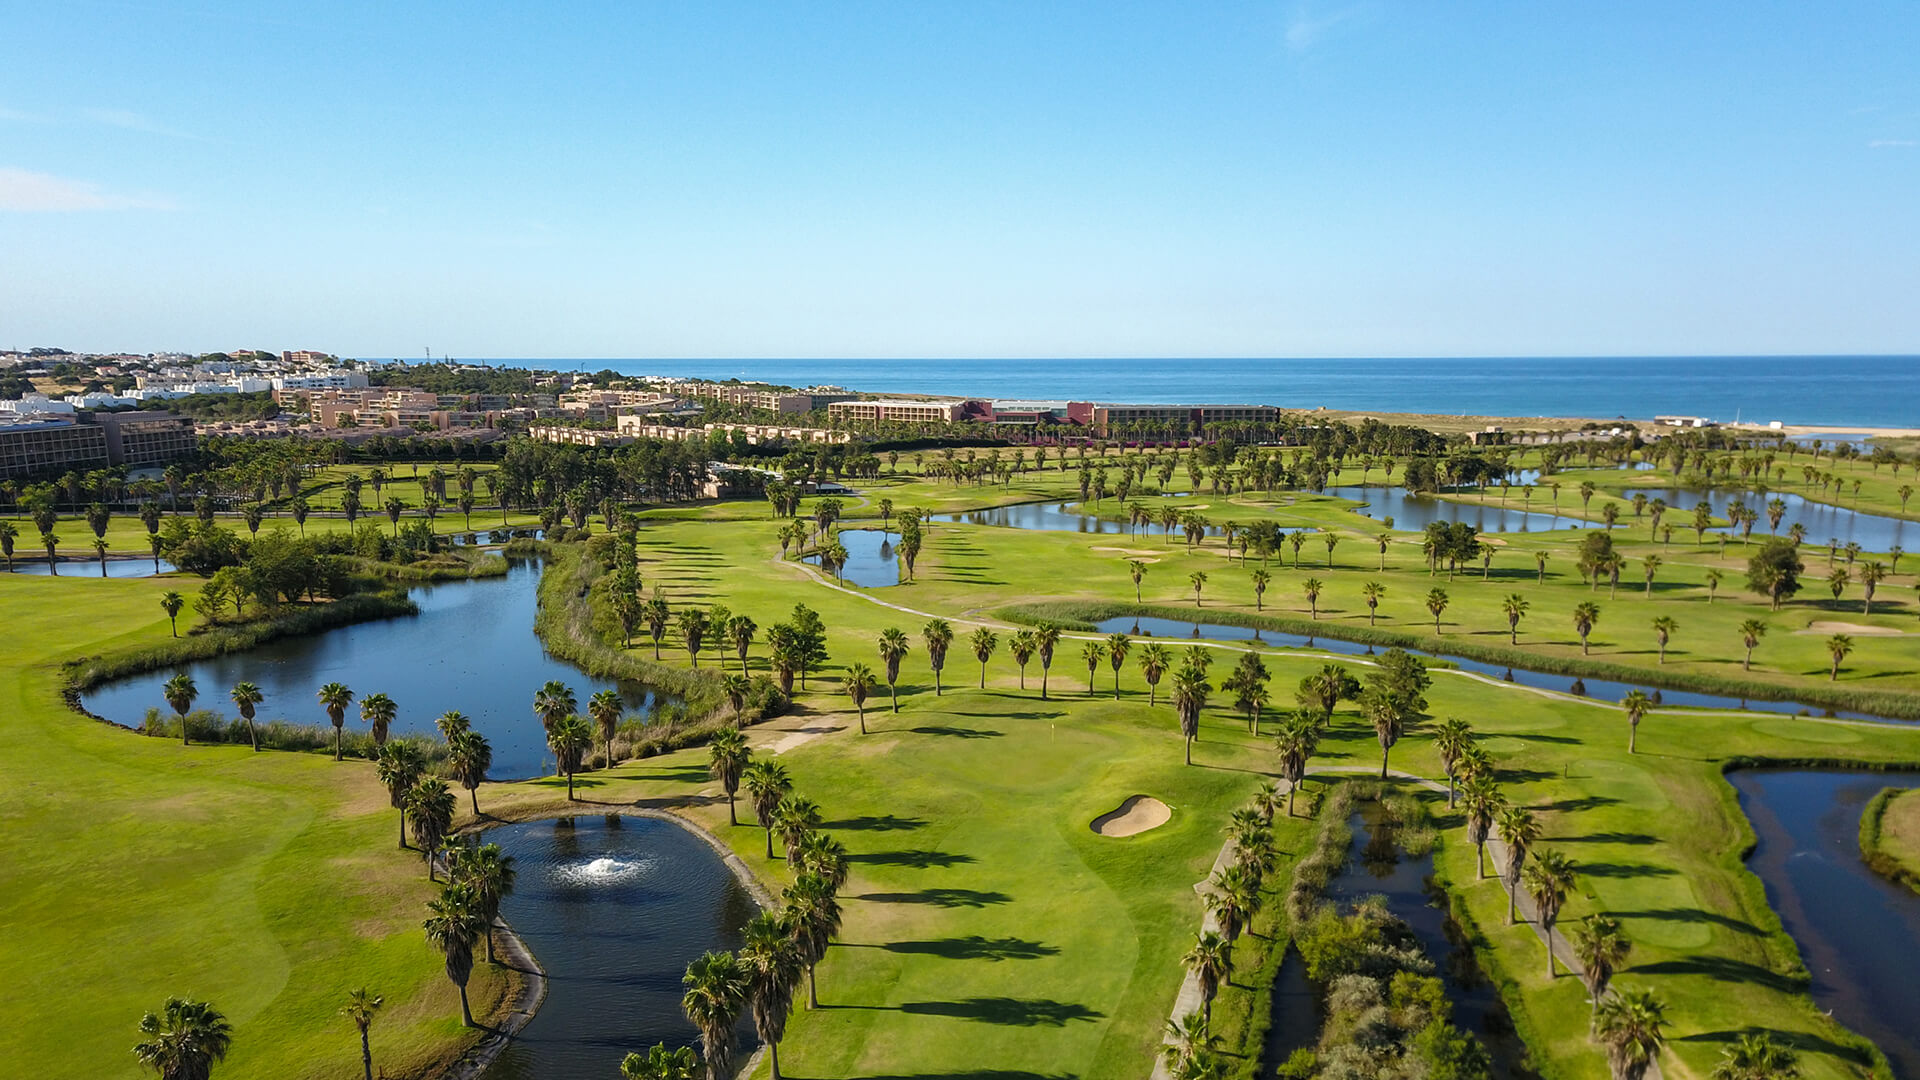 Which UK airports shall I travel from for a Golf Holiday to Portugal?